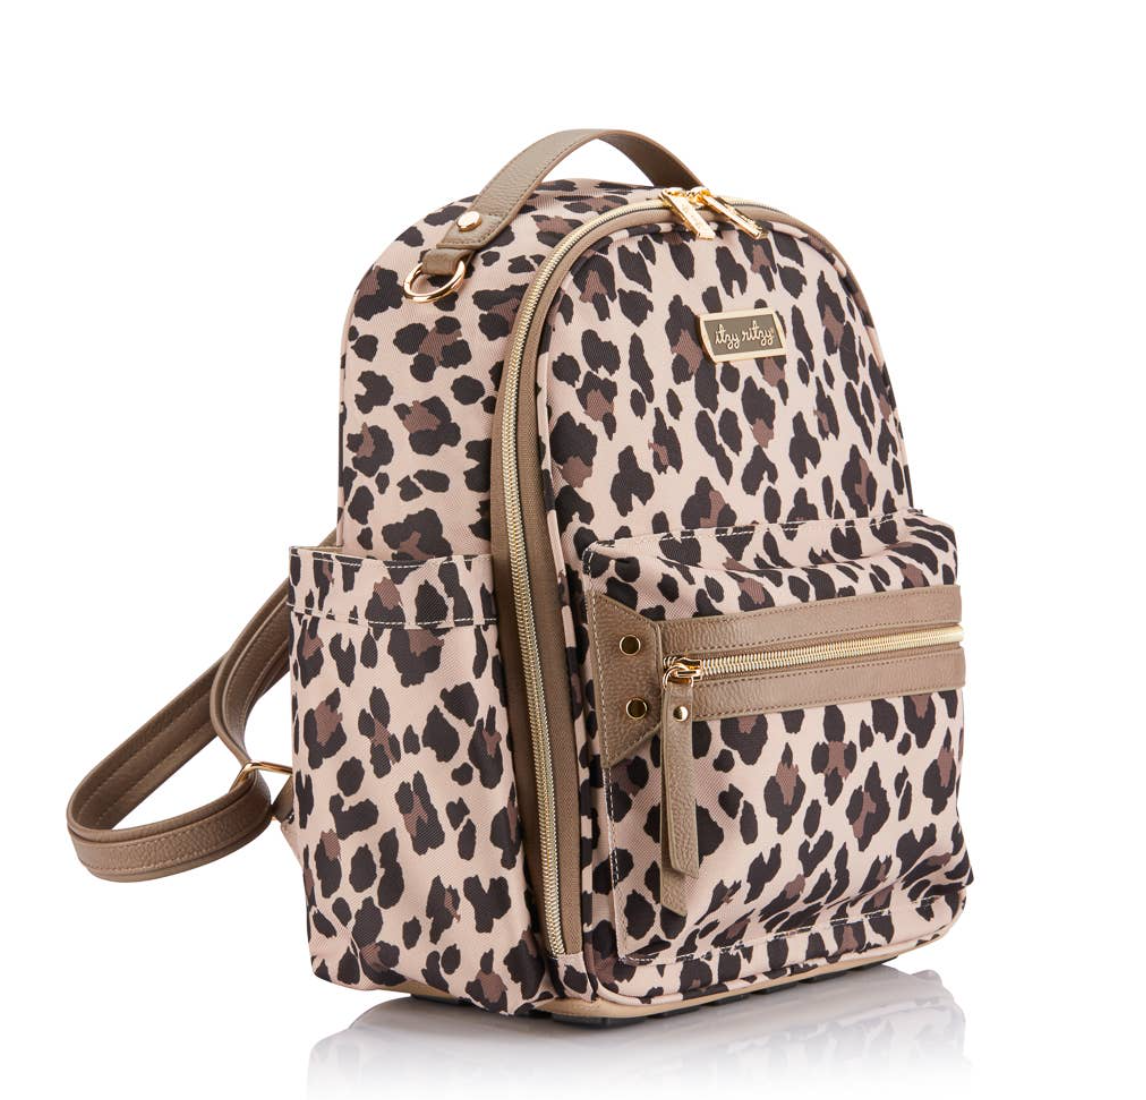 Itzy Mini™ Diaper Bag Backpack - Leopard